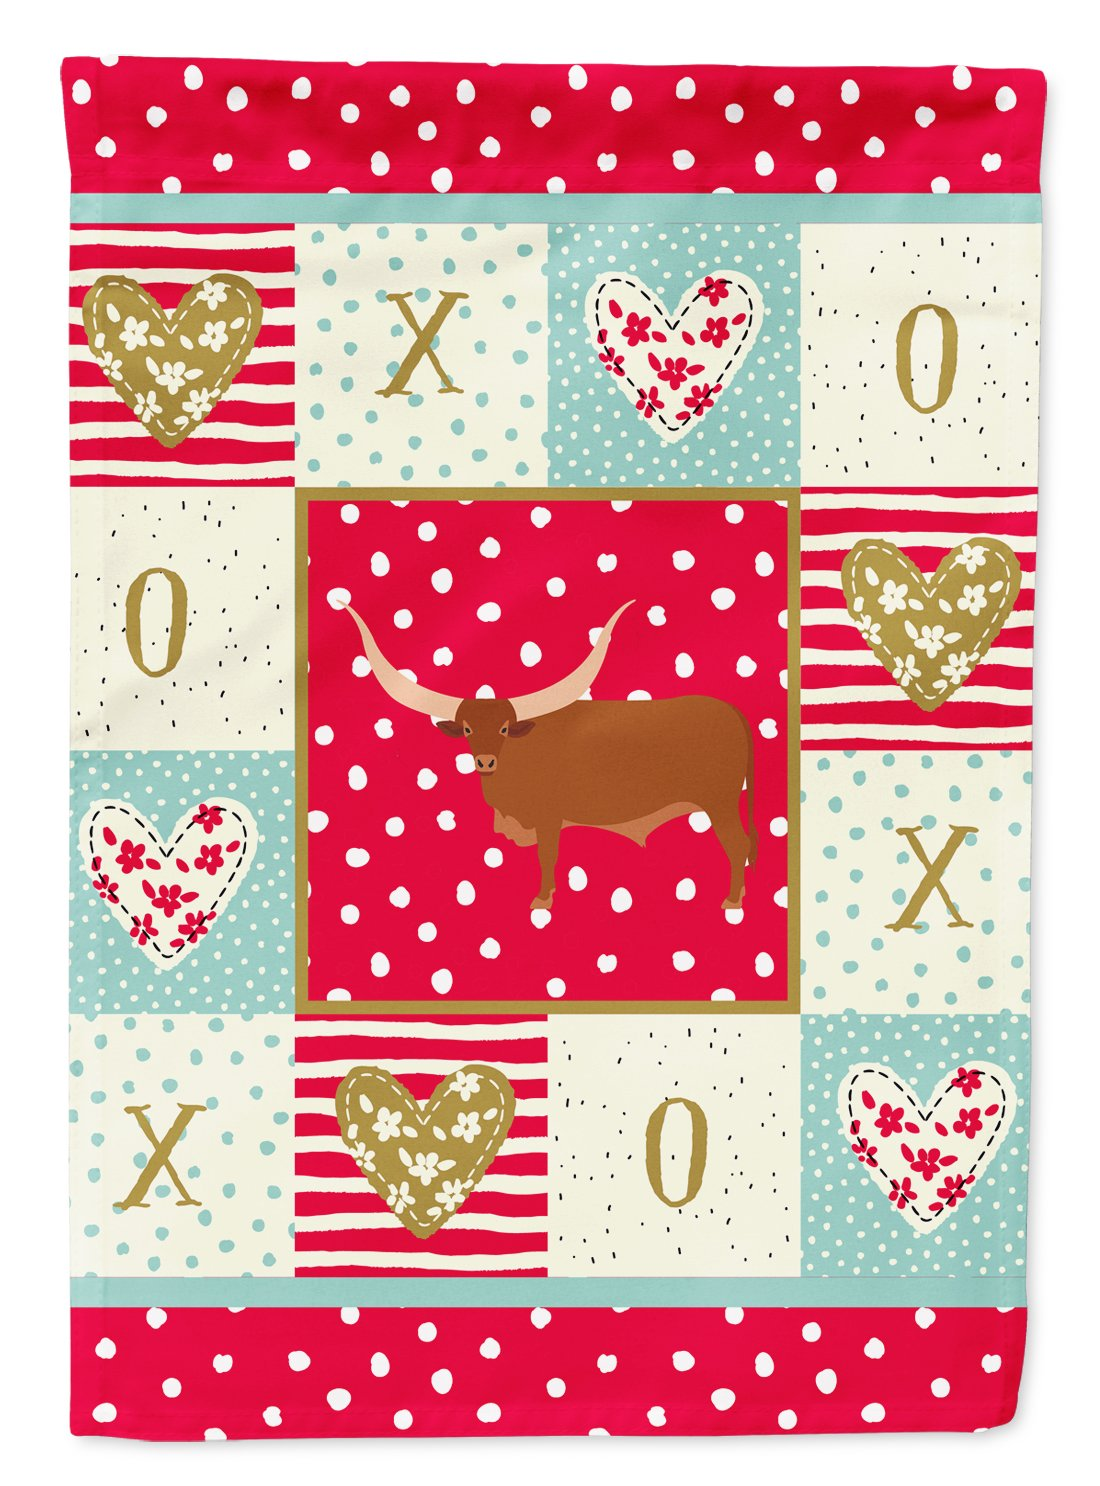 Ankole-Watusu Cow Love Flag Garden Size CK5250GF by Caroline's Treasures